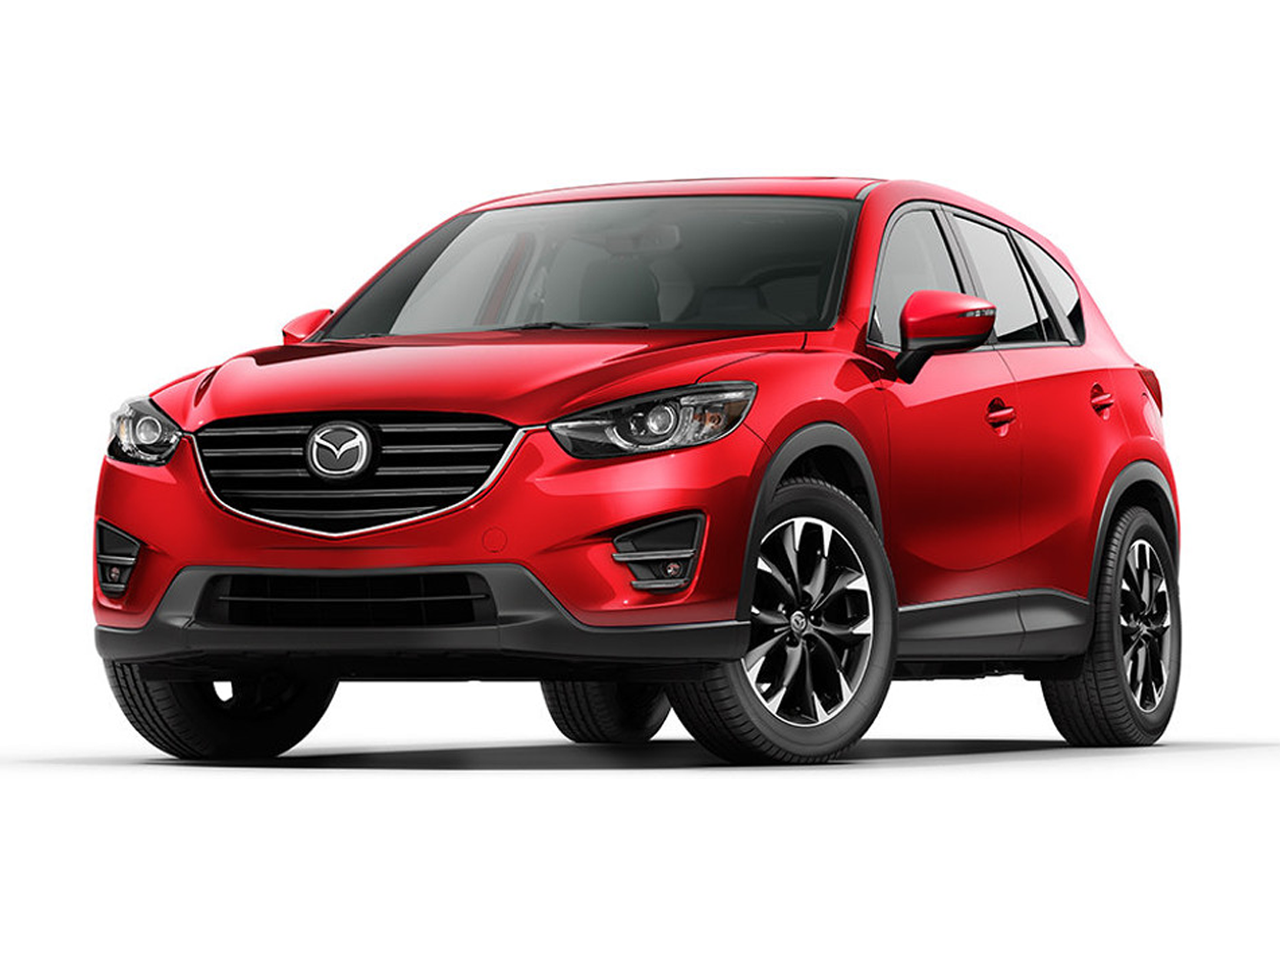 new and used mazda cx 5 prices photos reviews specs autos post. Black Bedroom Furniture Sets. Home Design Ideas